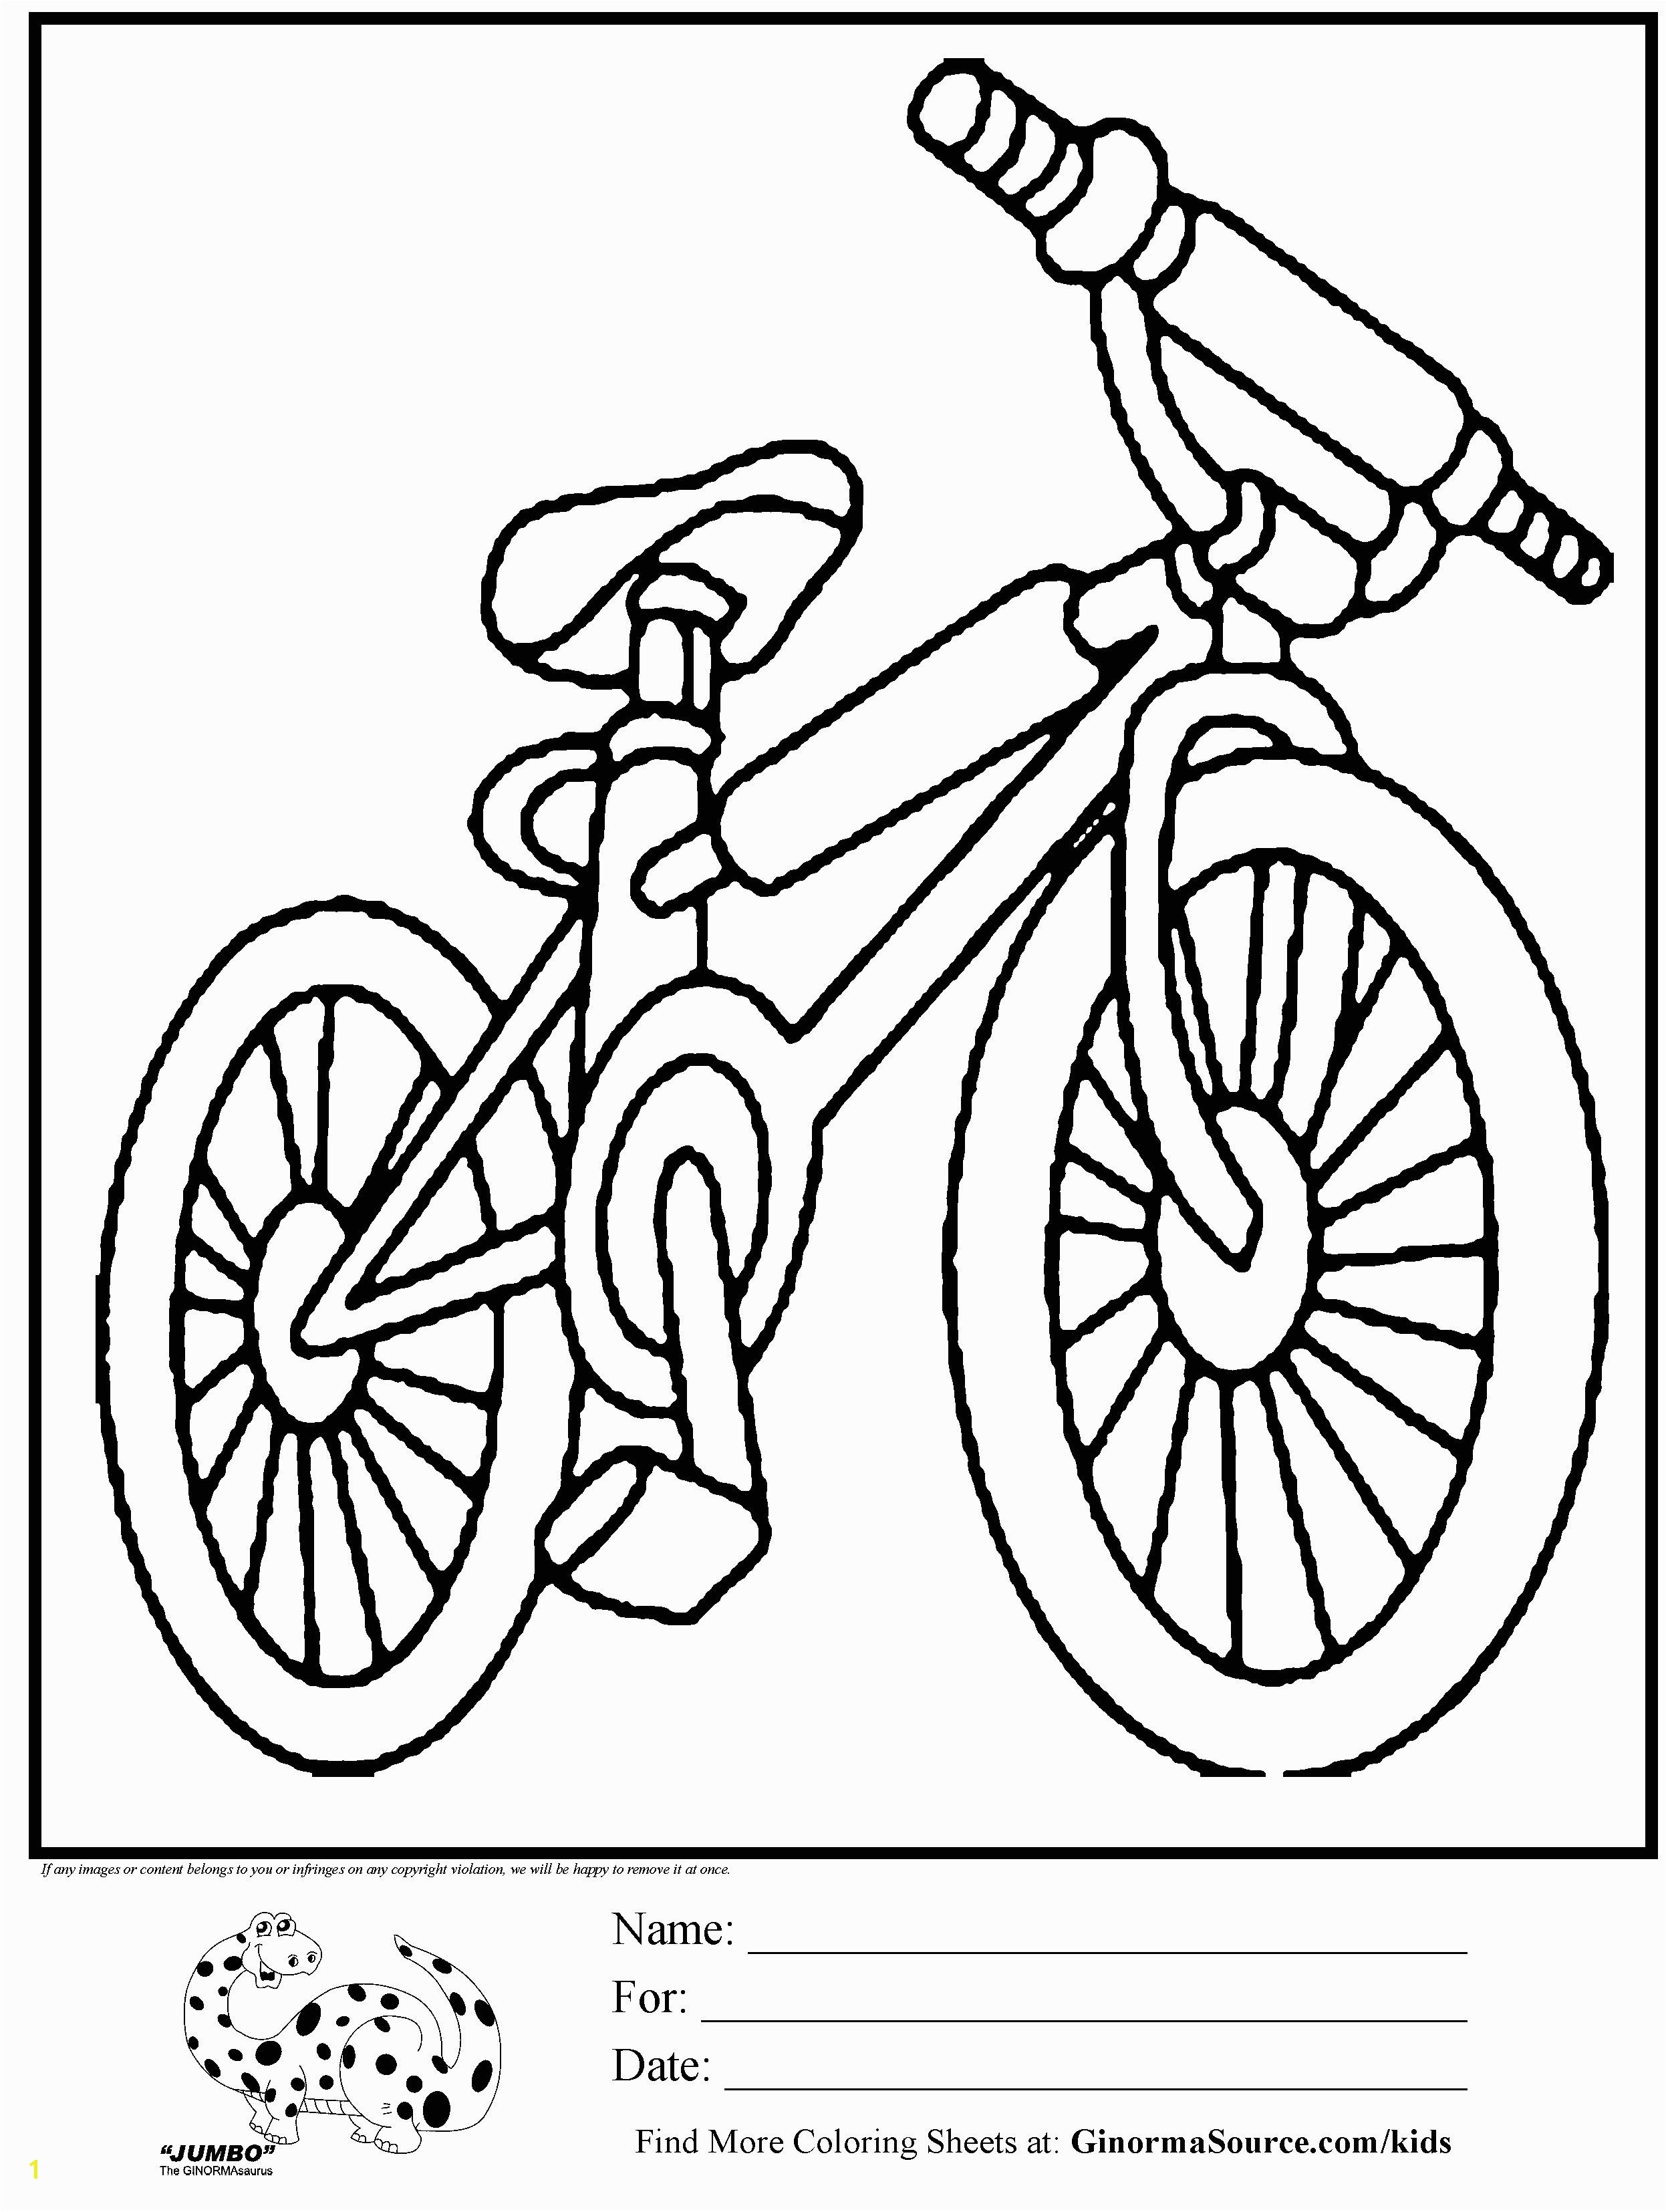 Bike Coloring Pages Fresh Fresh S S Media Cache Ak0 Pinimg 236x E2 95 0d Motorcycle Coloring